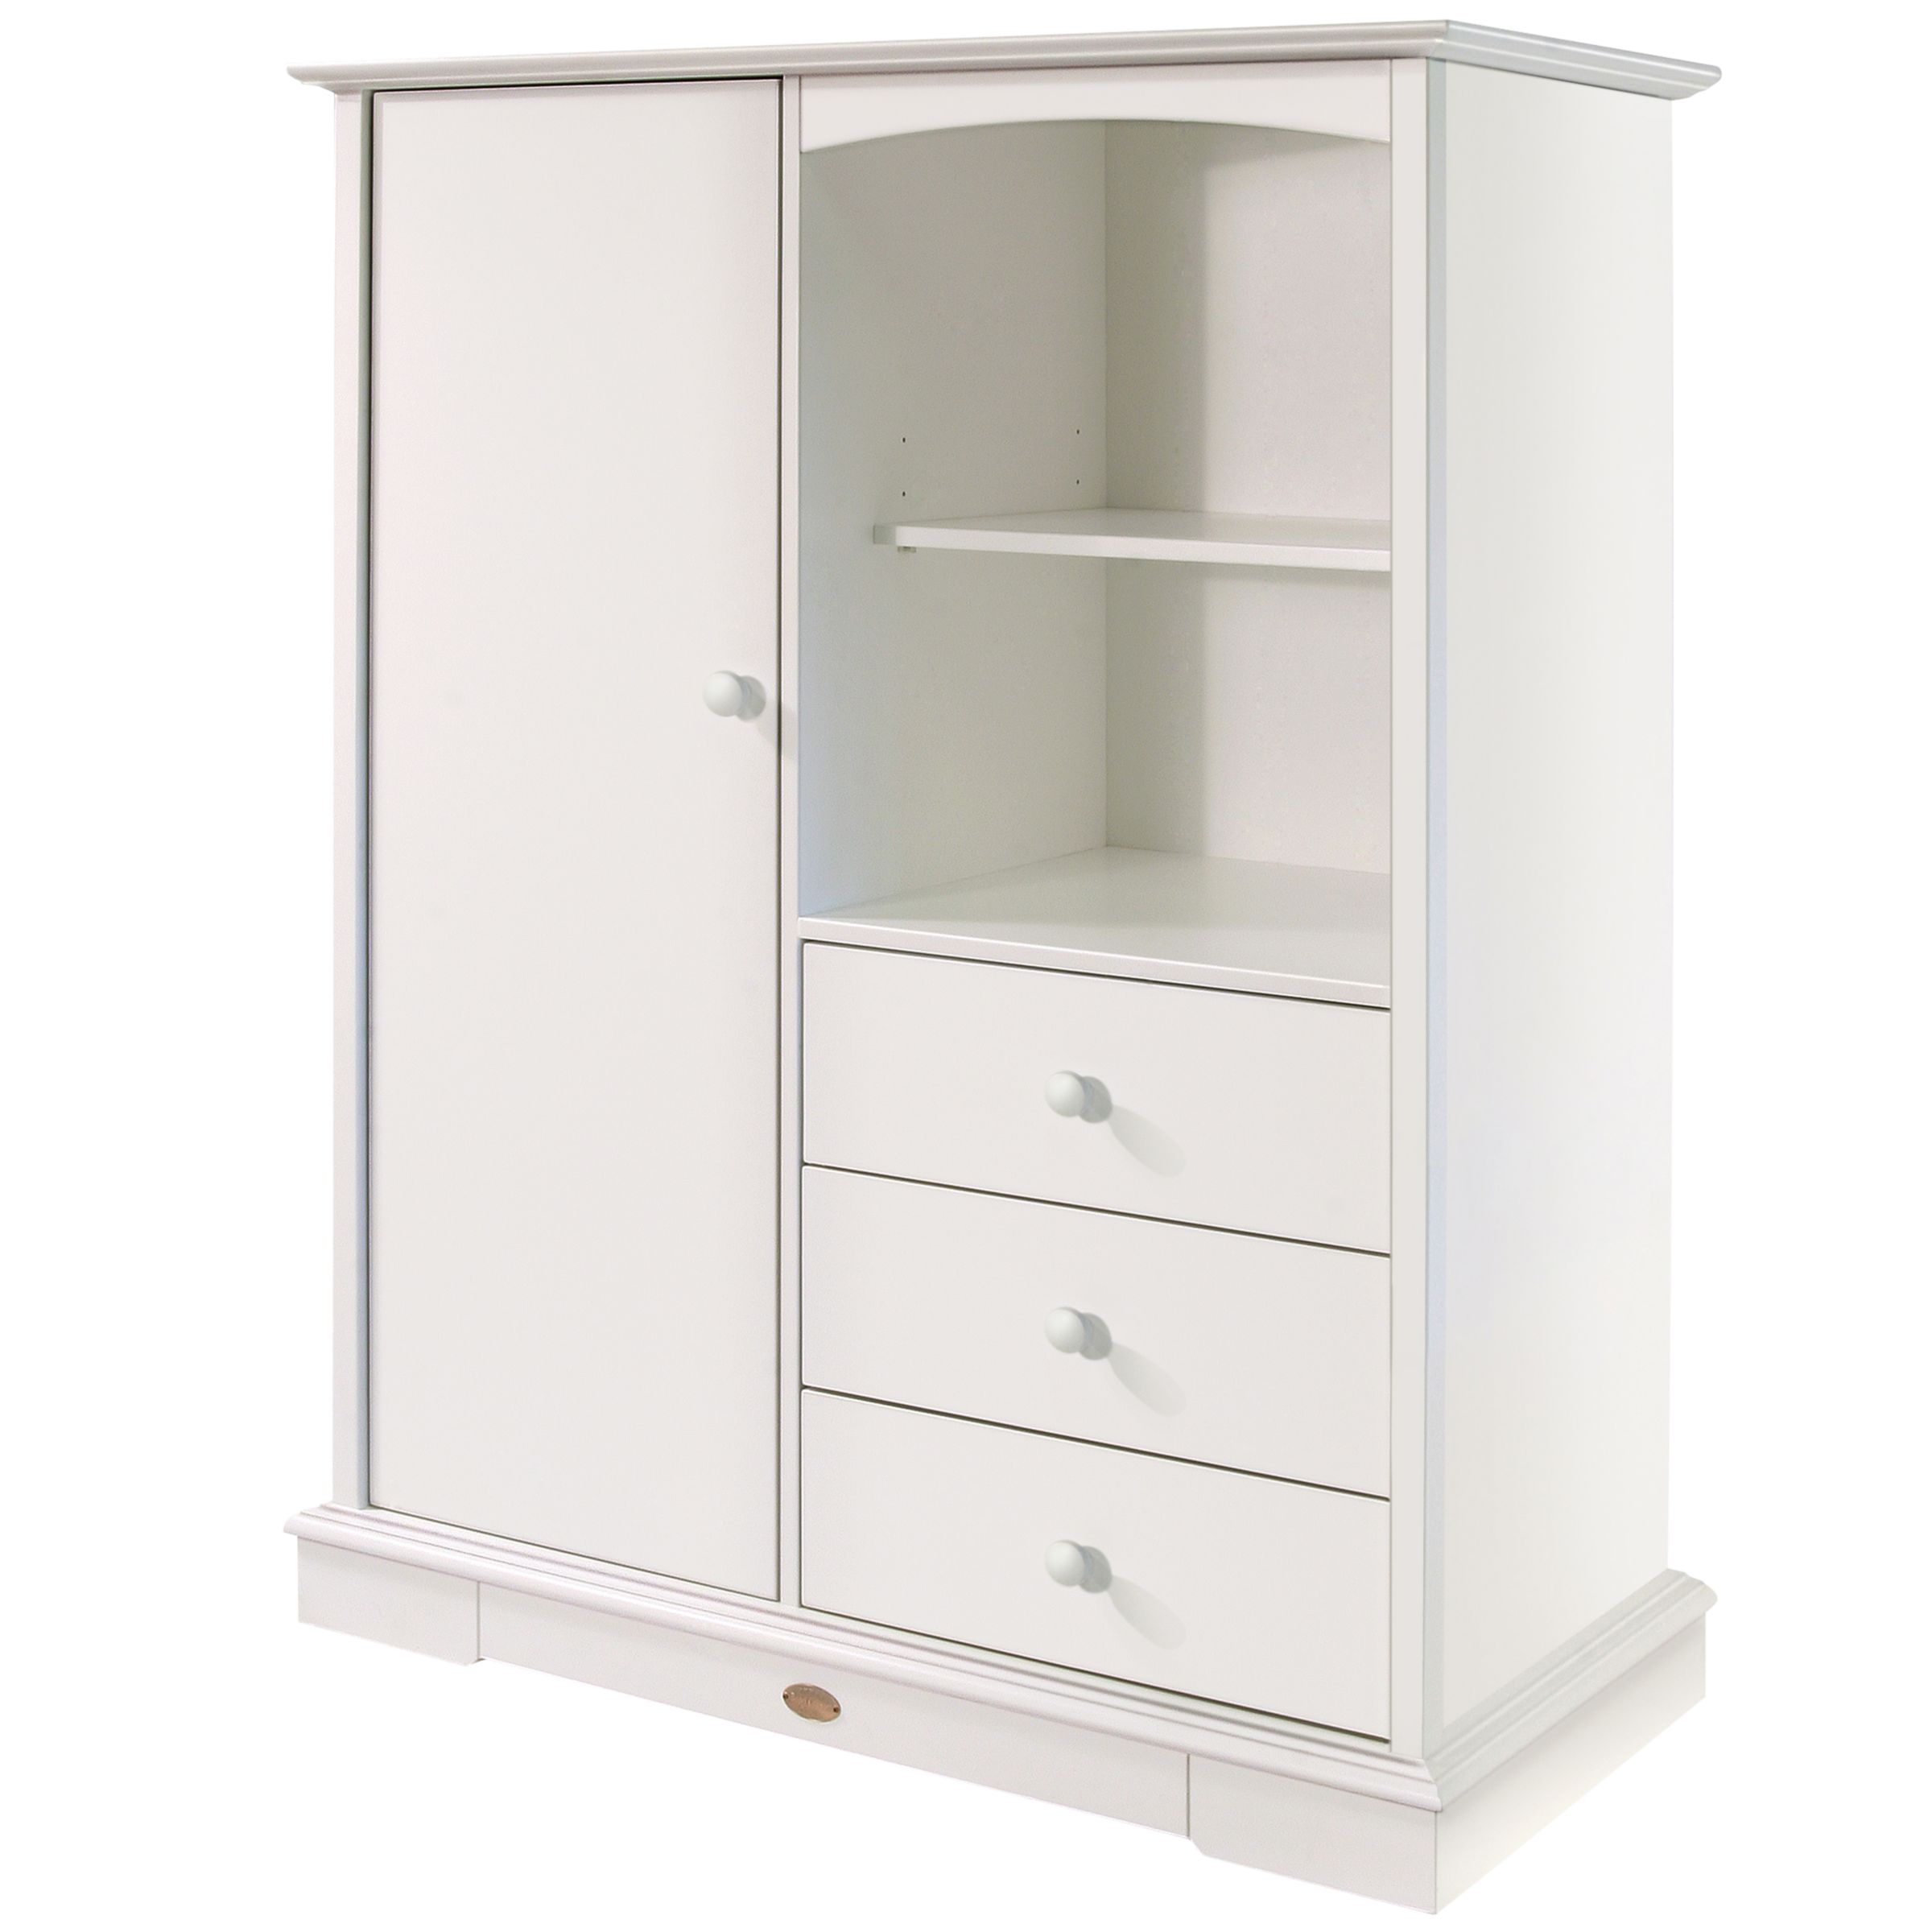 Junior Wardrobe, White